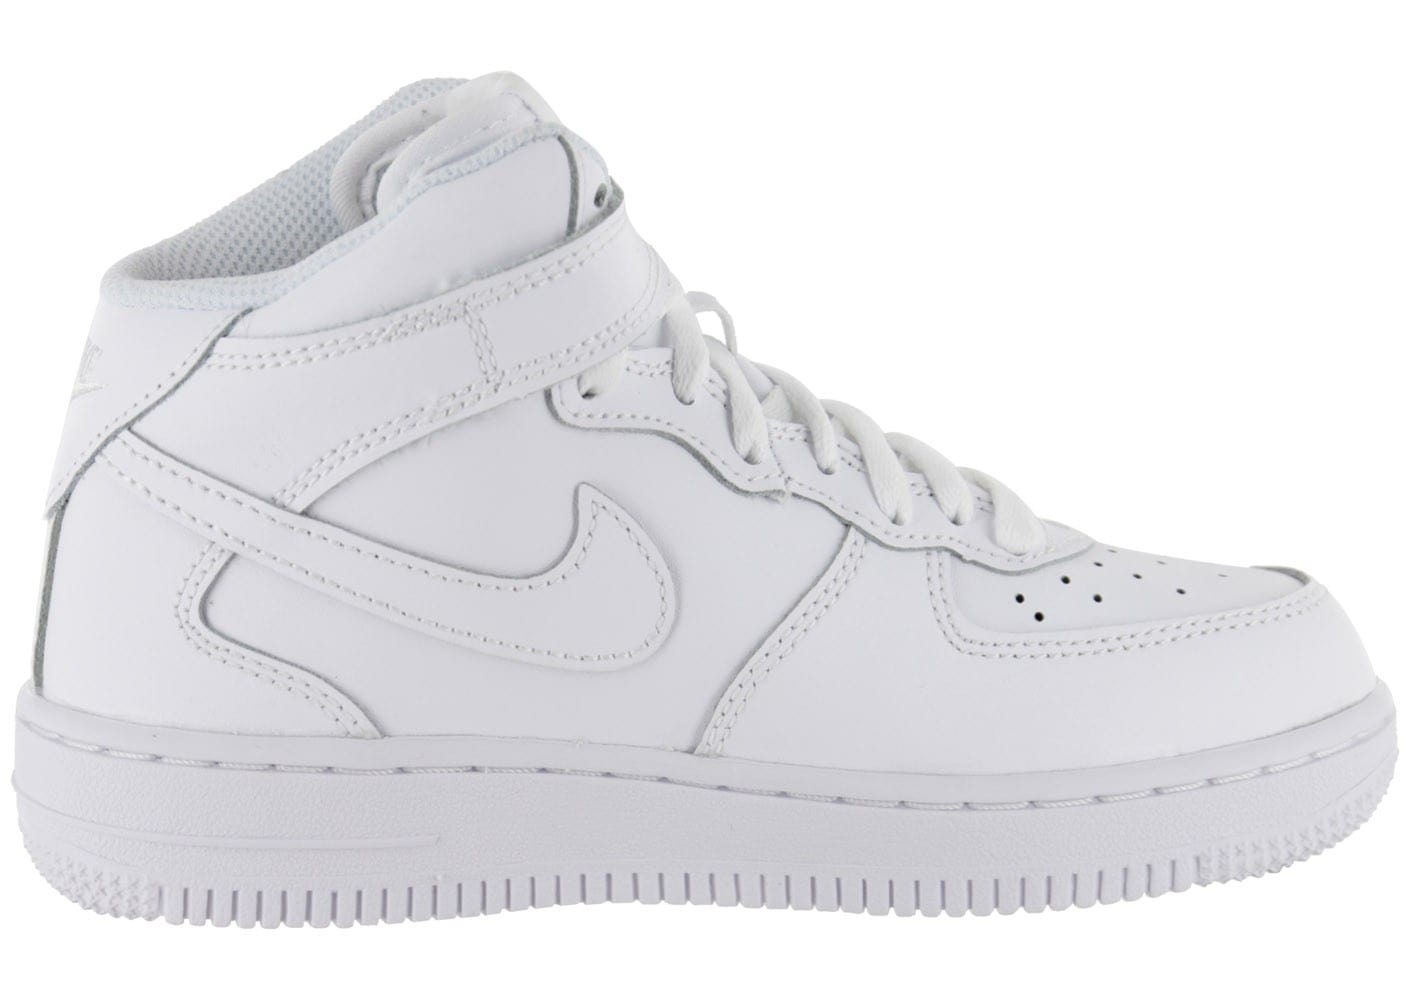 nike air force 1 mid enfant blanche chaussures enfant chausport. Black Bedroom Furniture Sets. Home Design Ideas